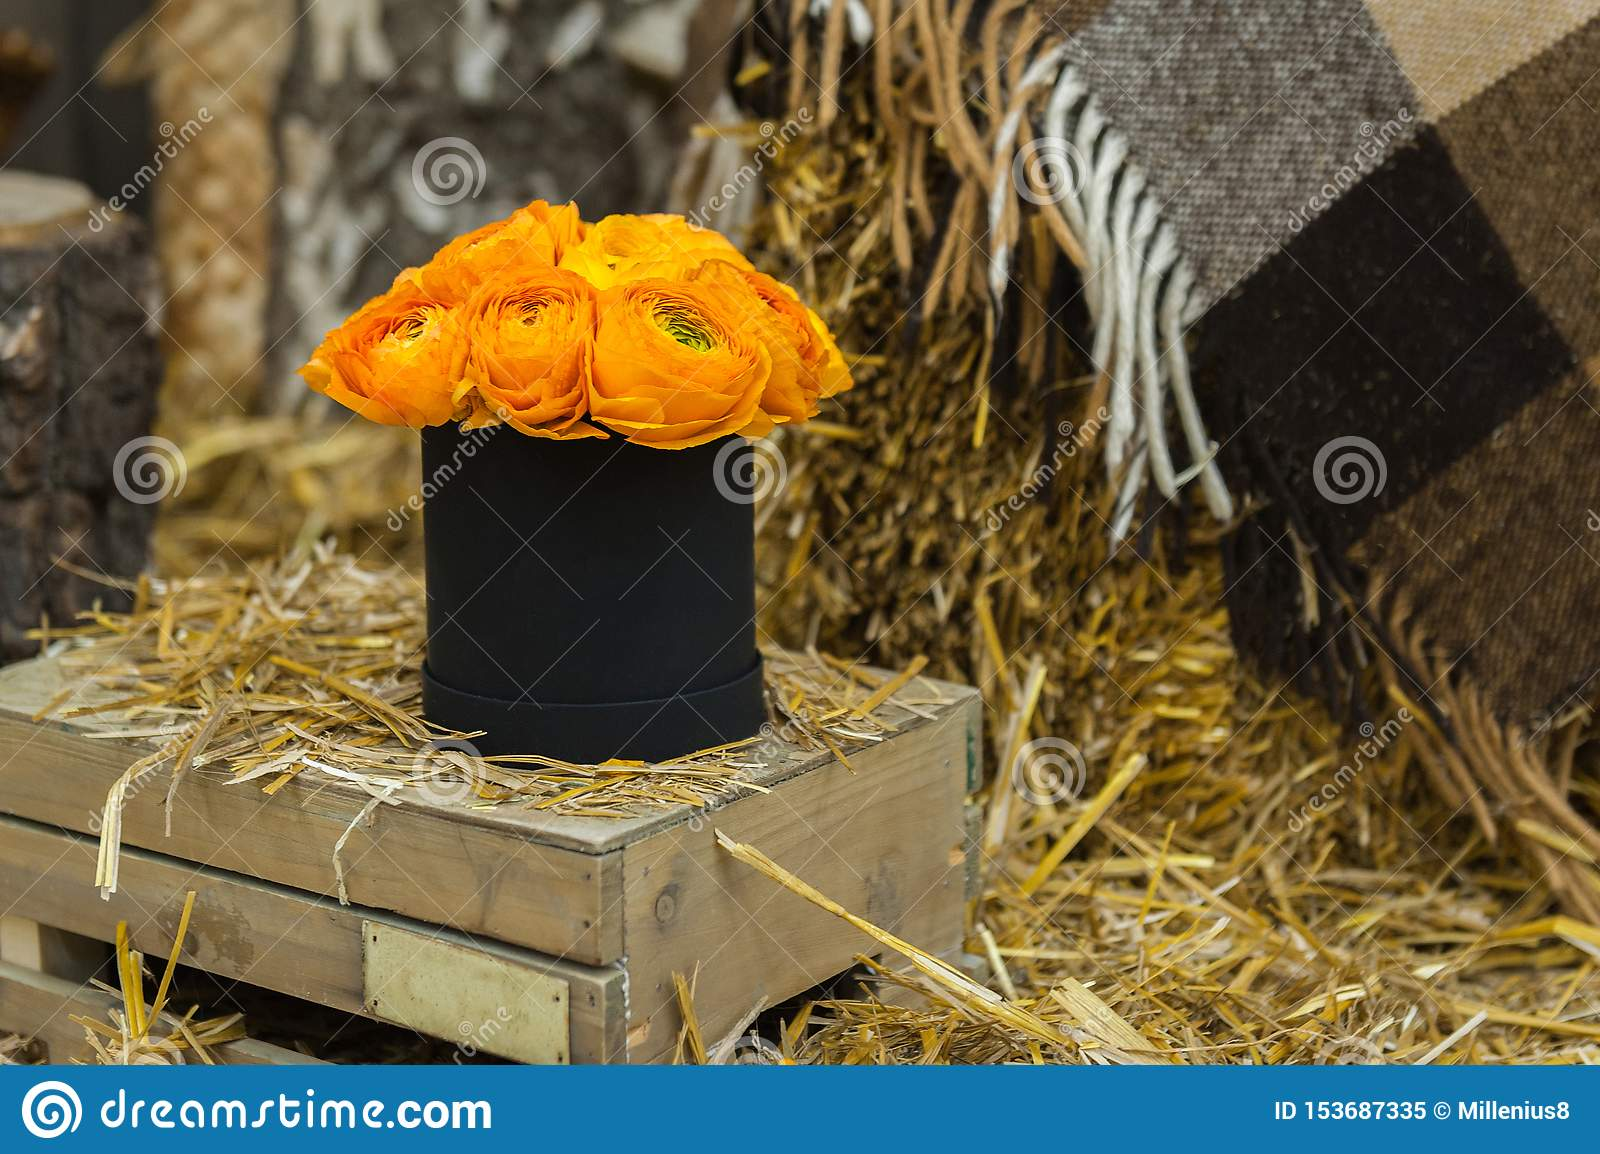 Beautiful Bouquet of flowers in a round hat box on a table